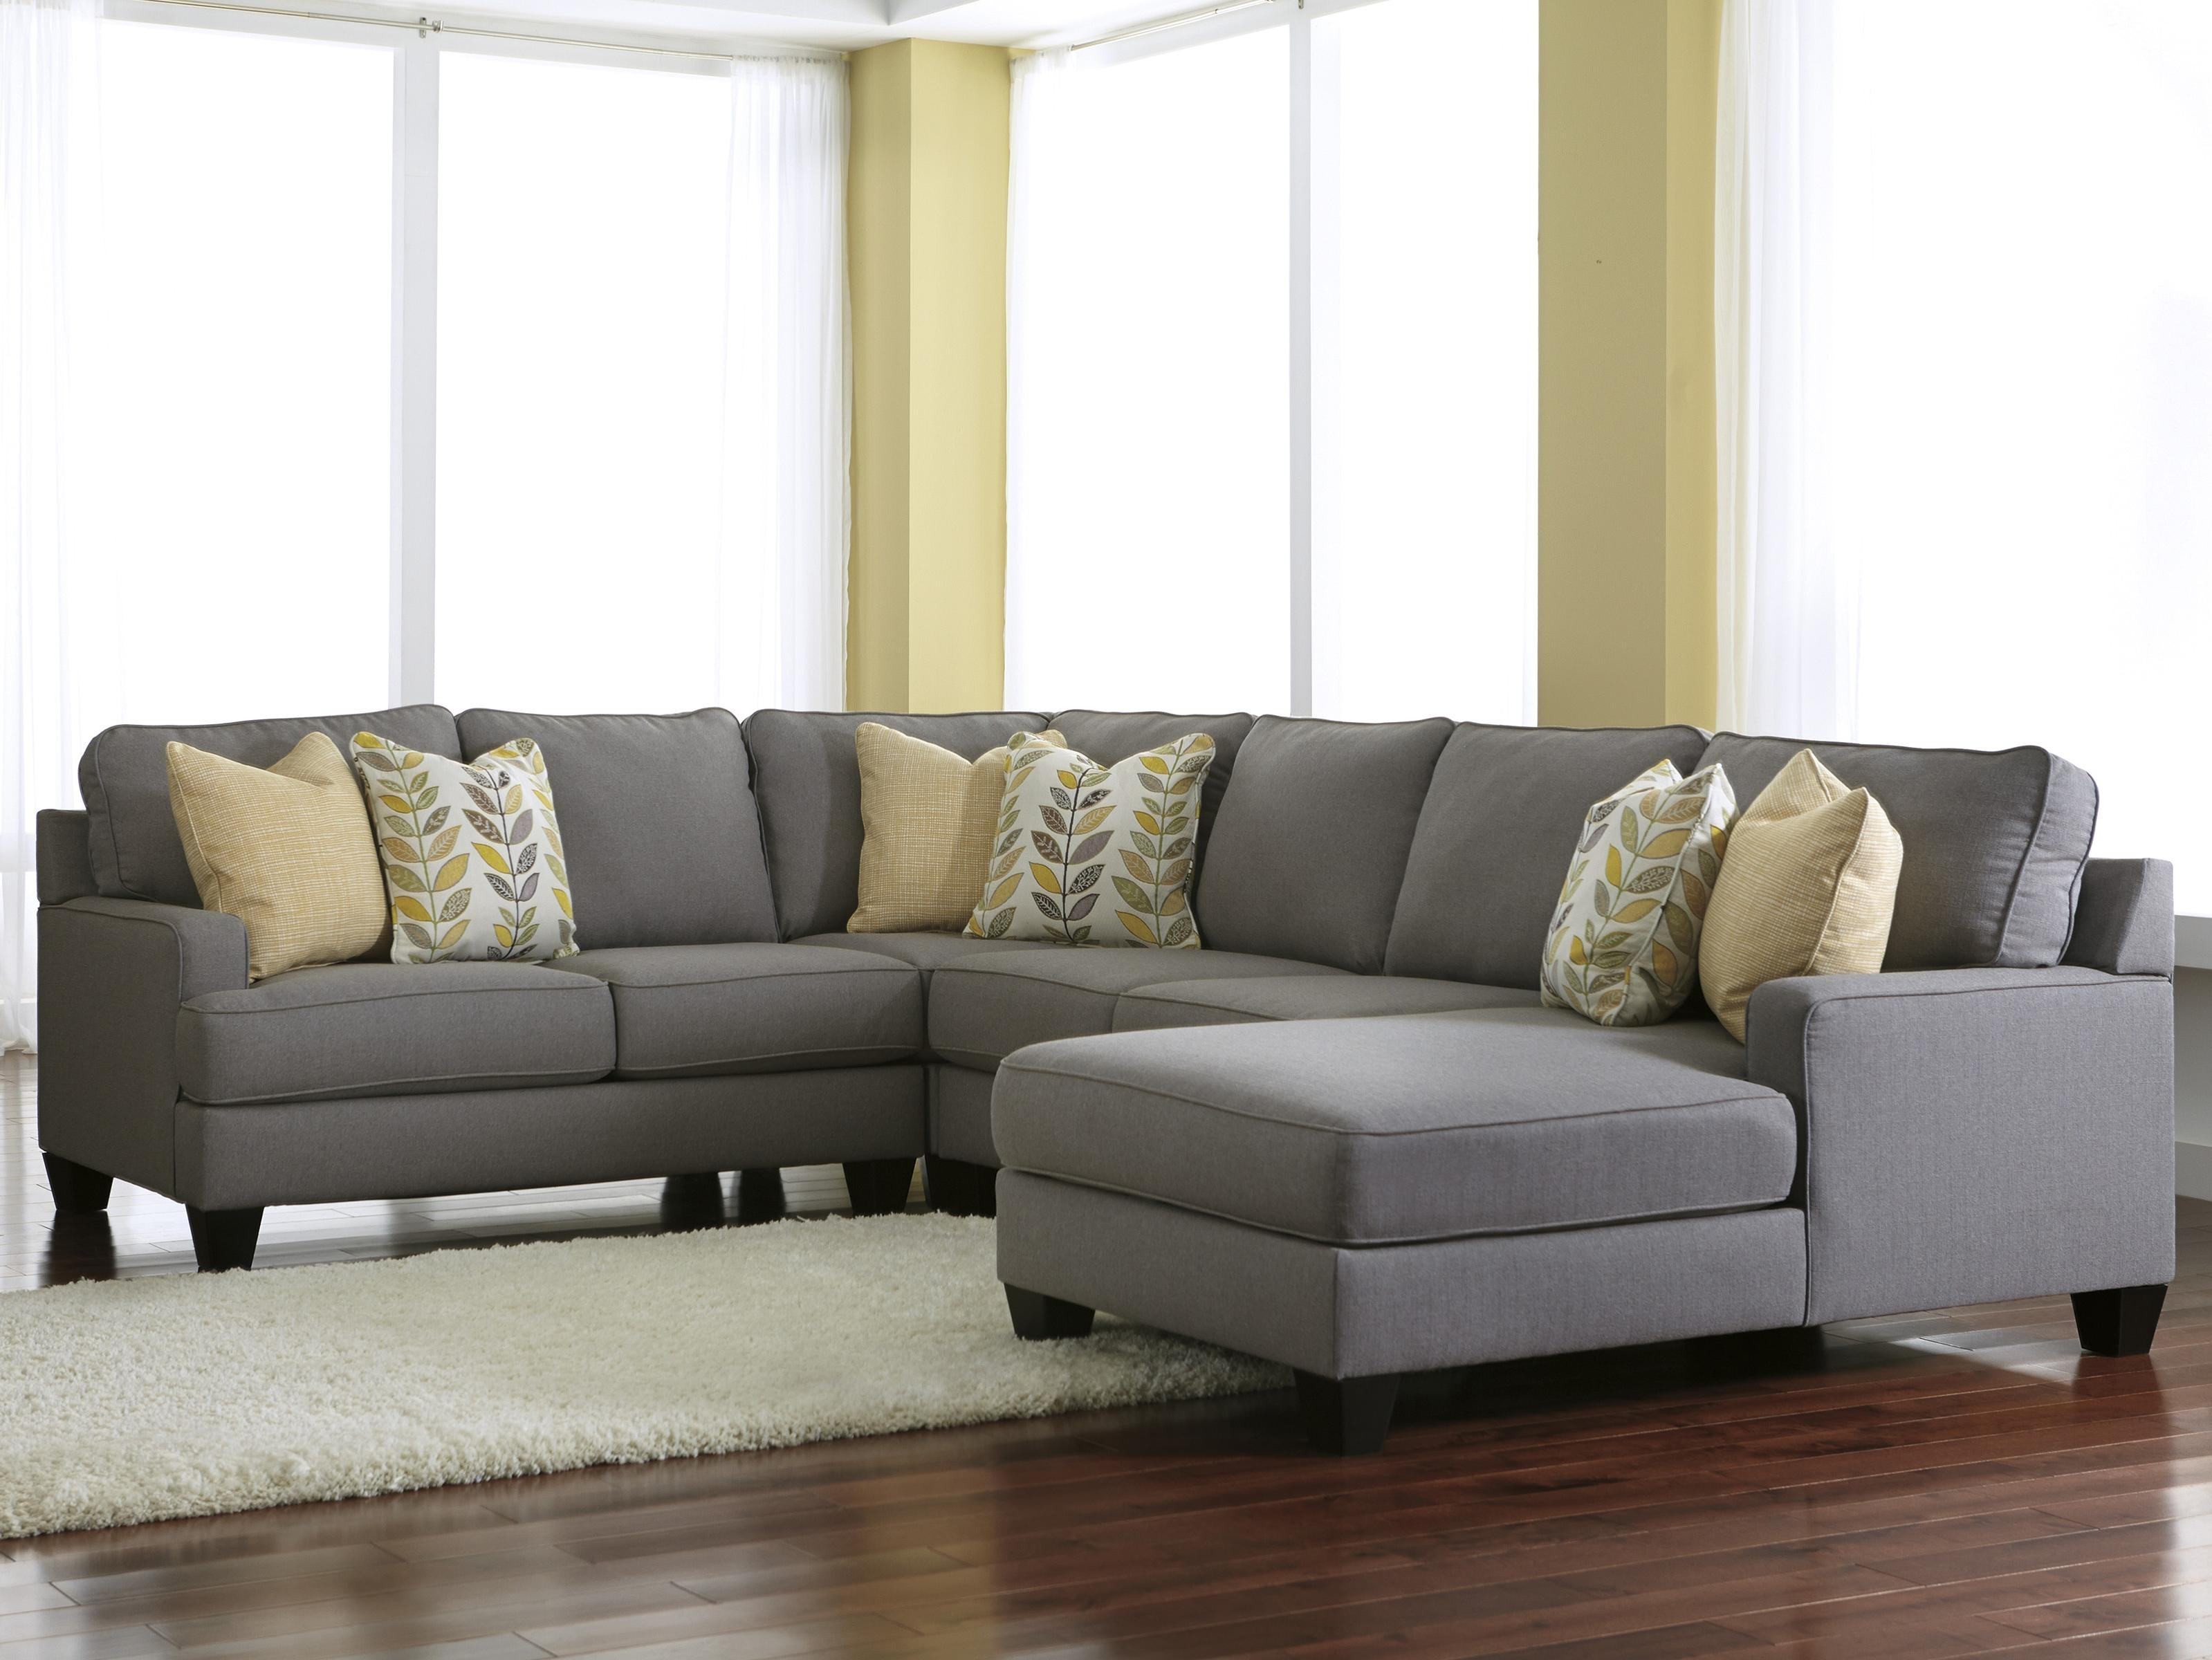 Signature Designashley Chamberly – Alloy Modern 4 Piece Pertaining To Jacksonville Nc Sectional Sofas (View 7 of 10)